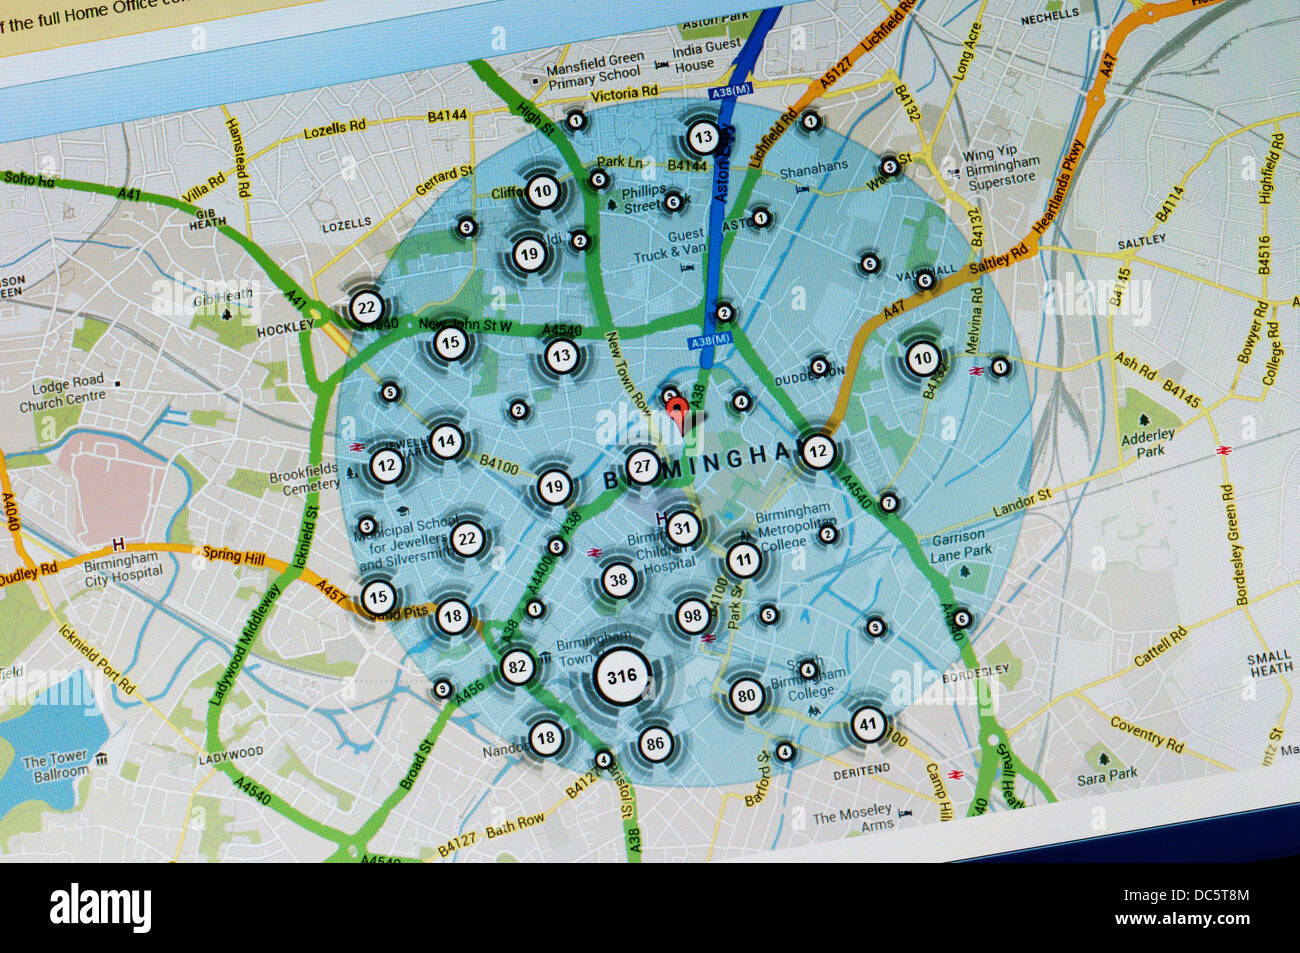 City Shown On The Map Stock Photos & City Shown On The Map Stock